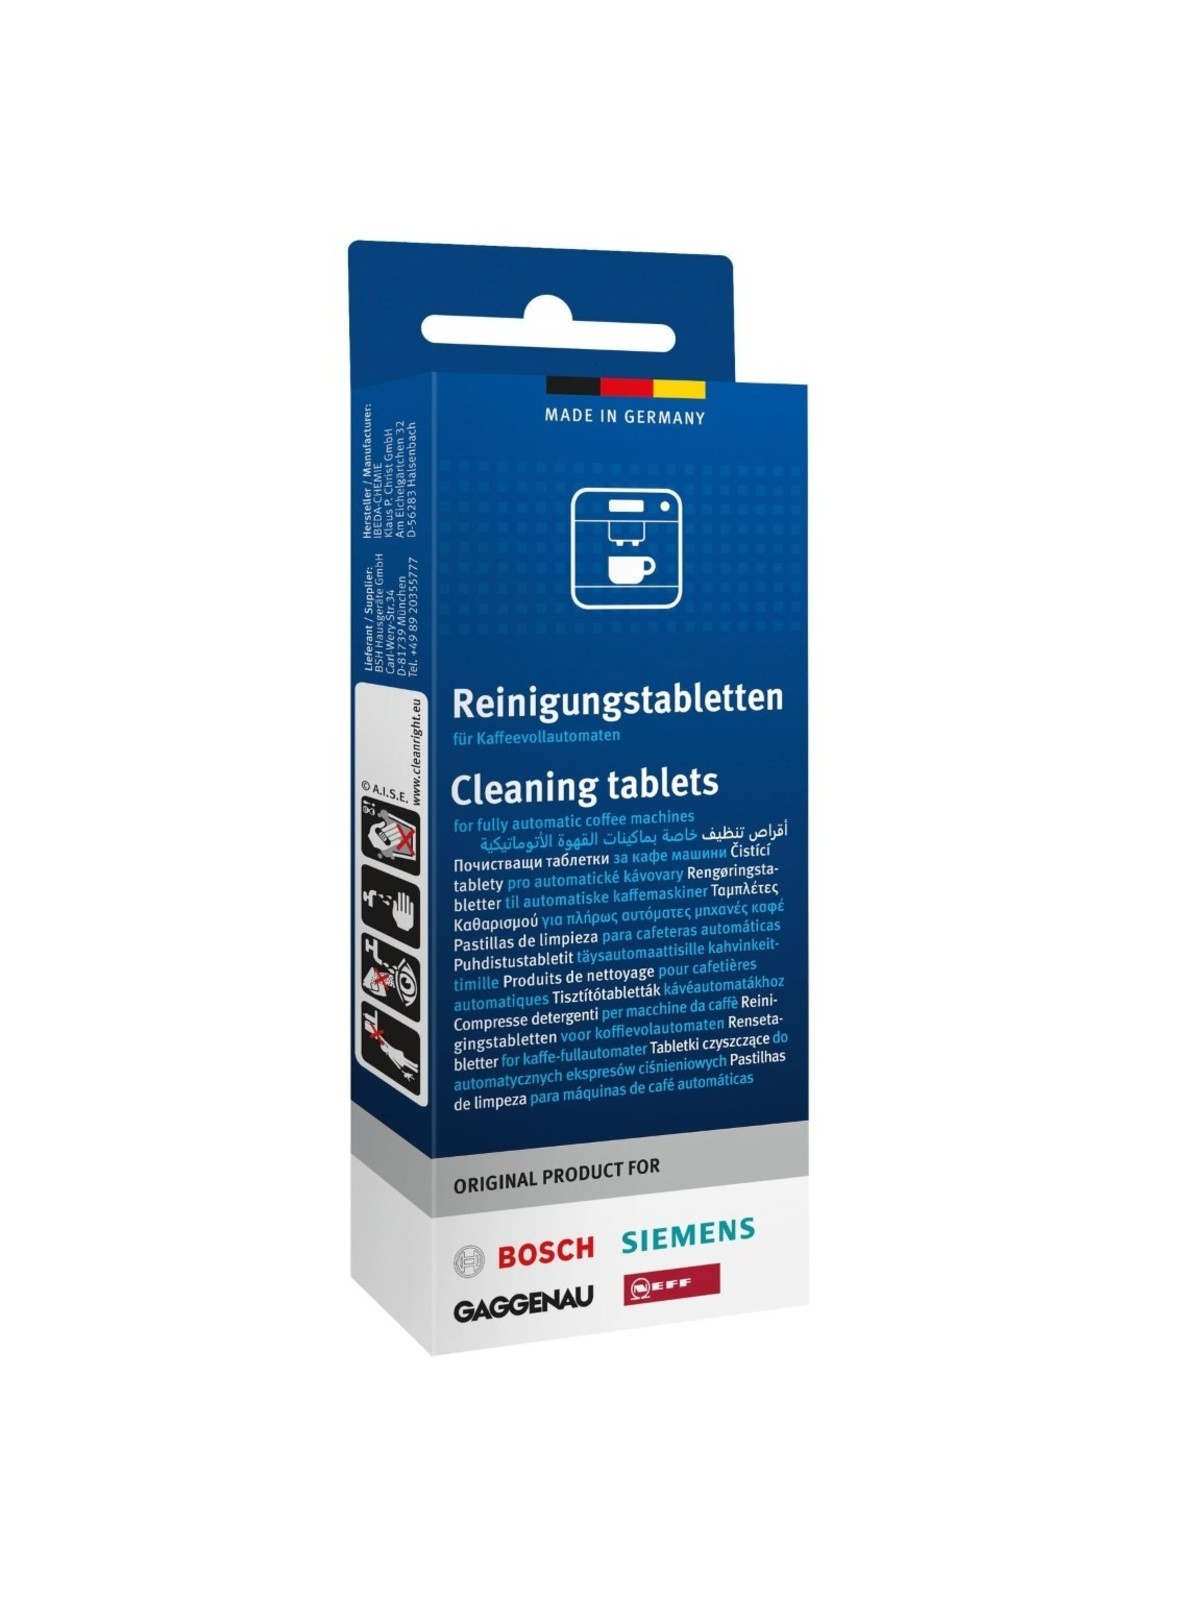 SIEMENS BOSCH Cleaning Tablets